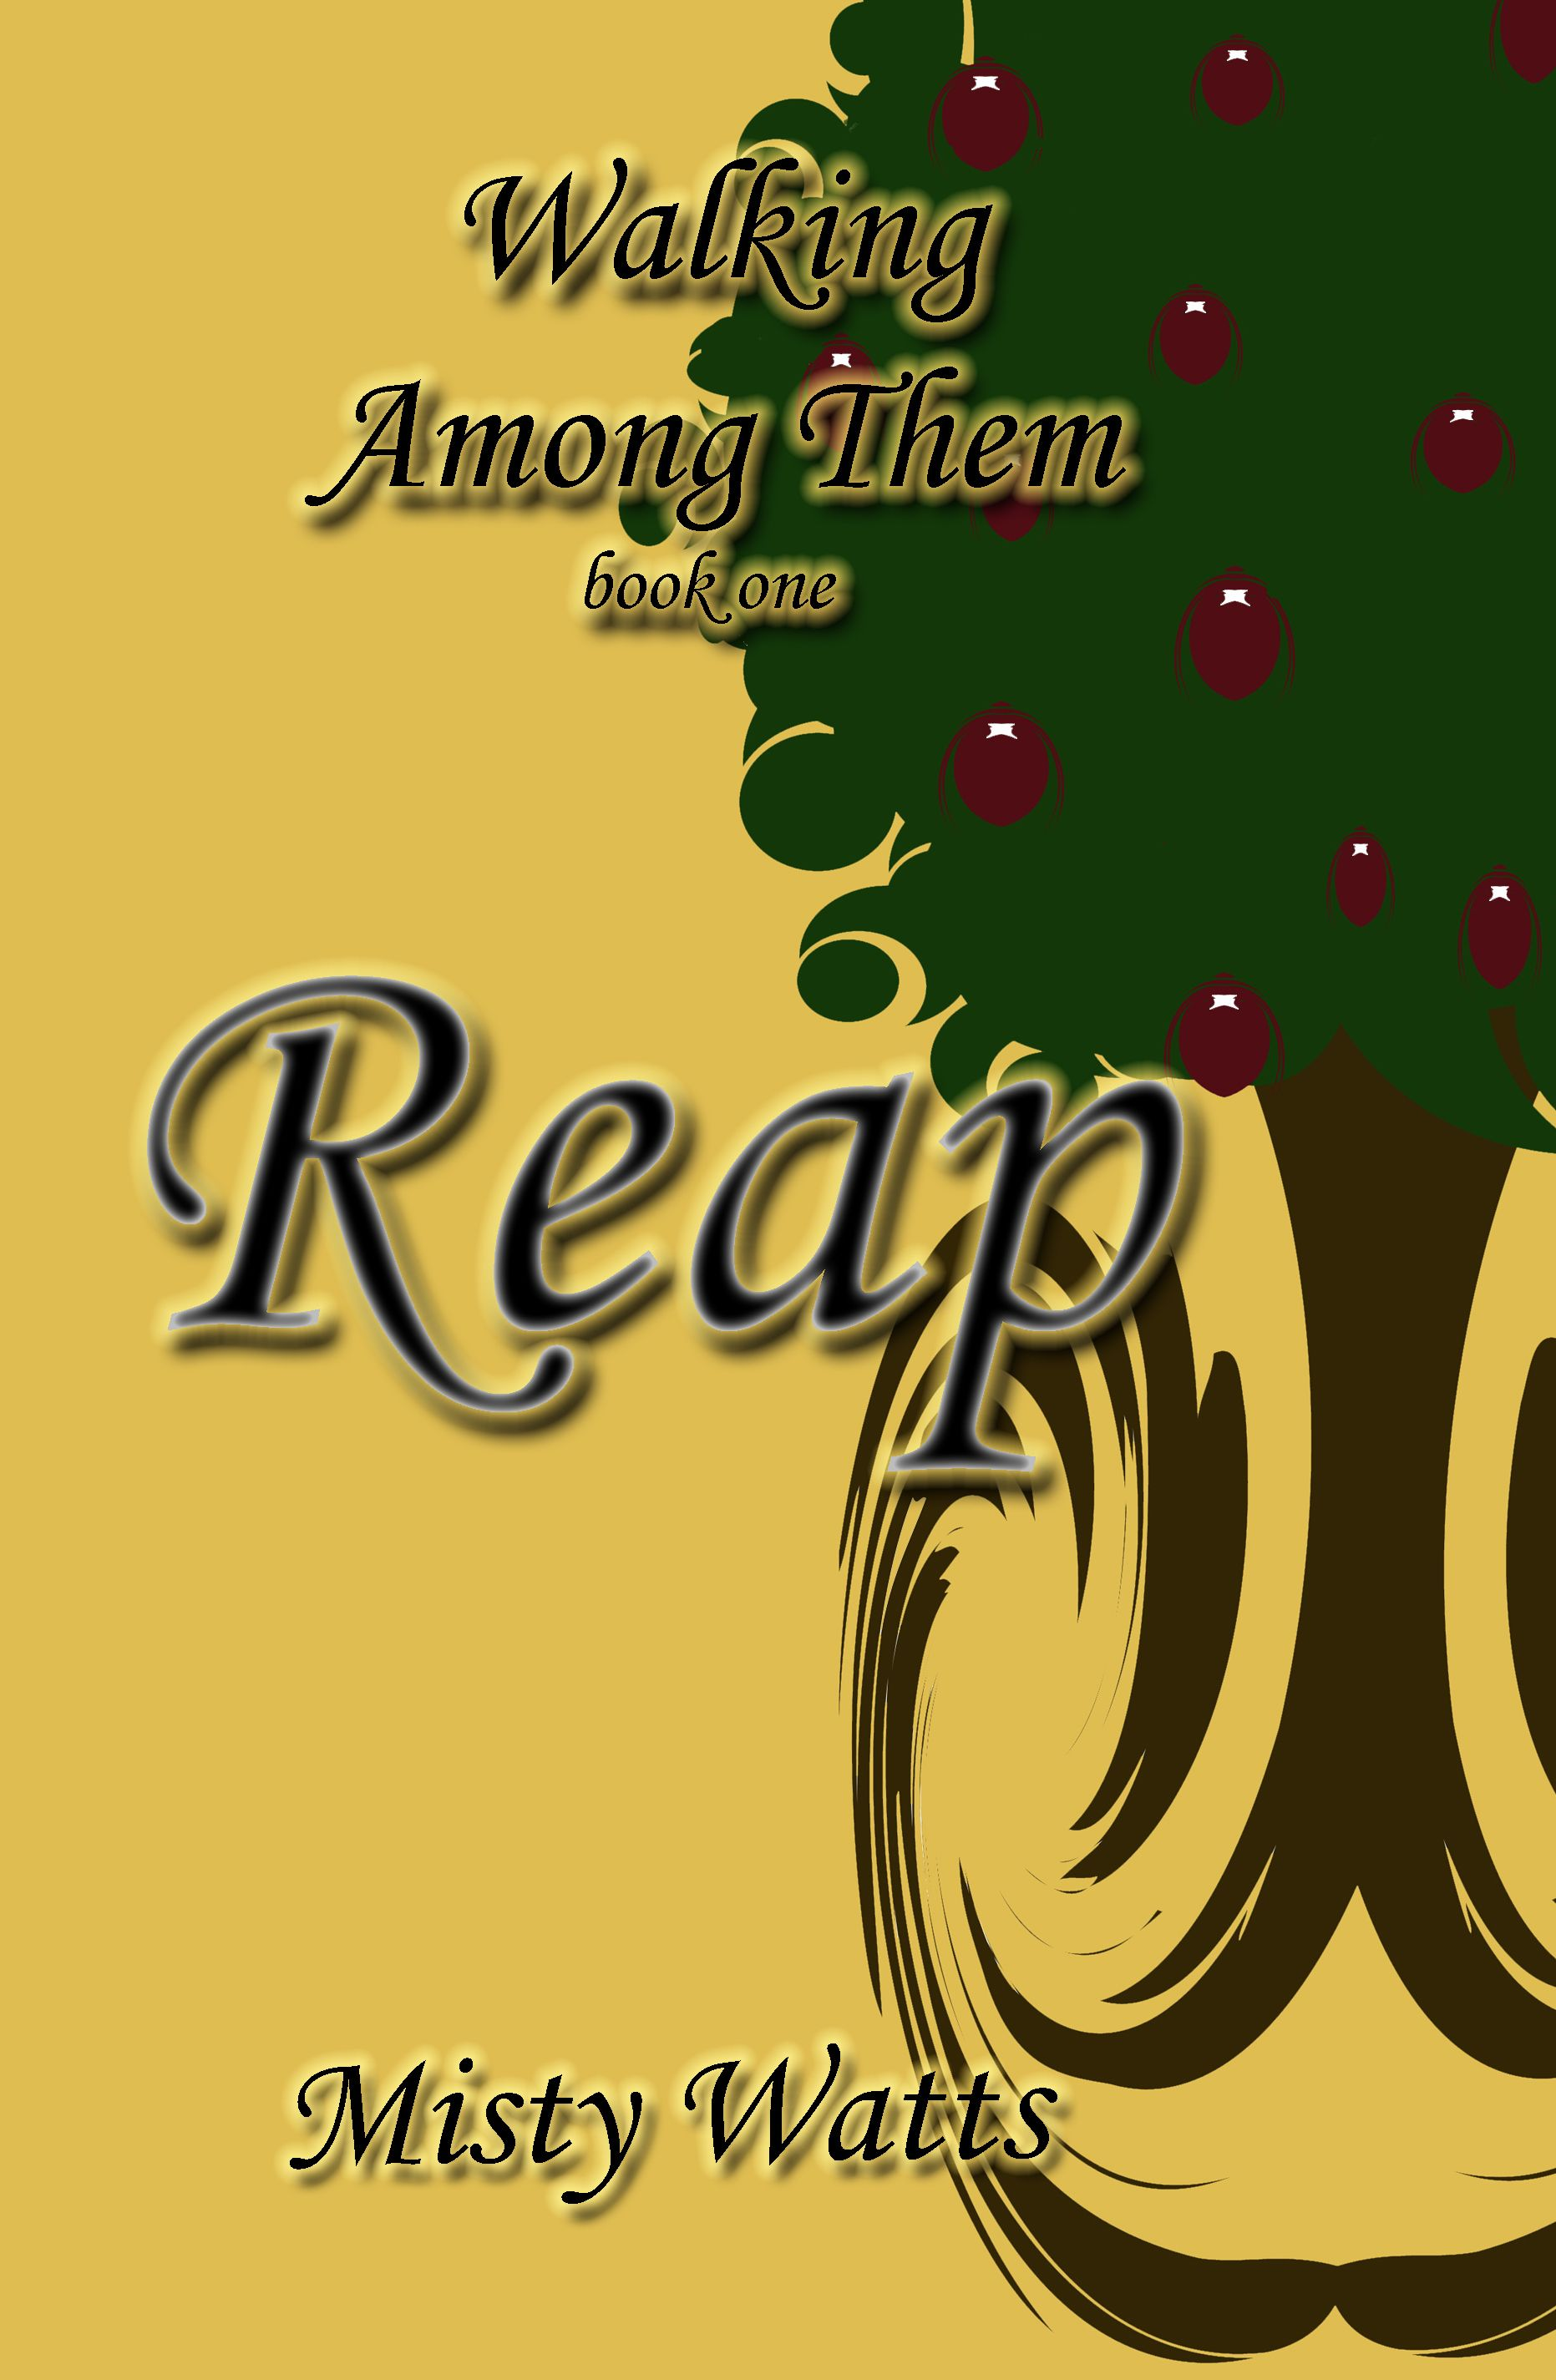 Book one in the supernatural series, Walking Among Them, Reap. Available now on Amazon.com and Kindle.